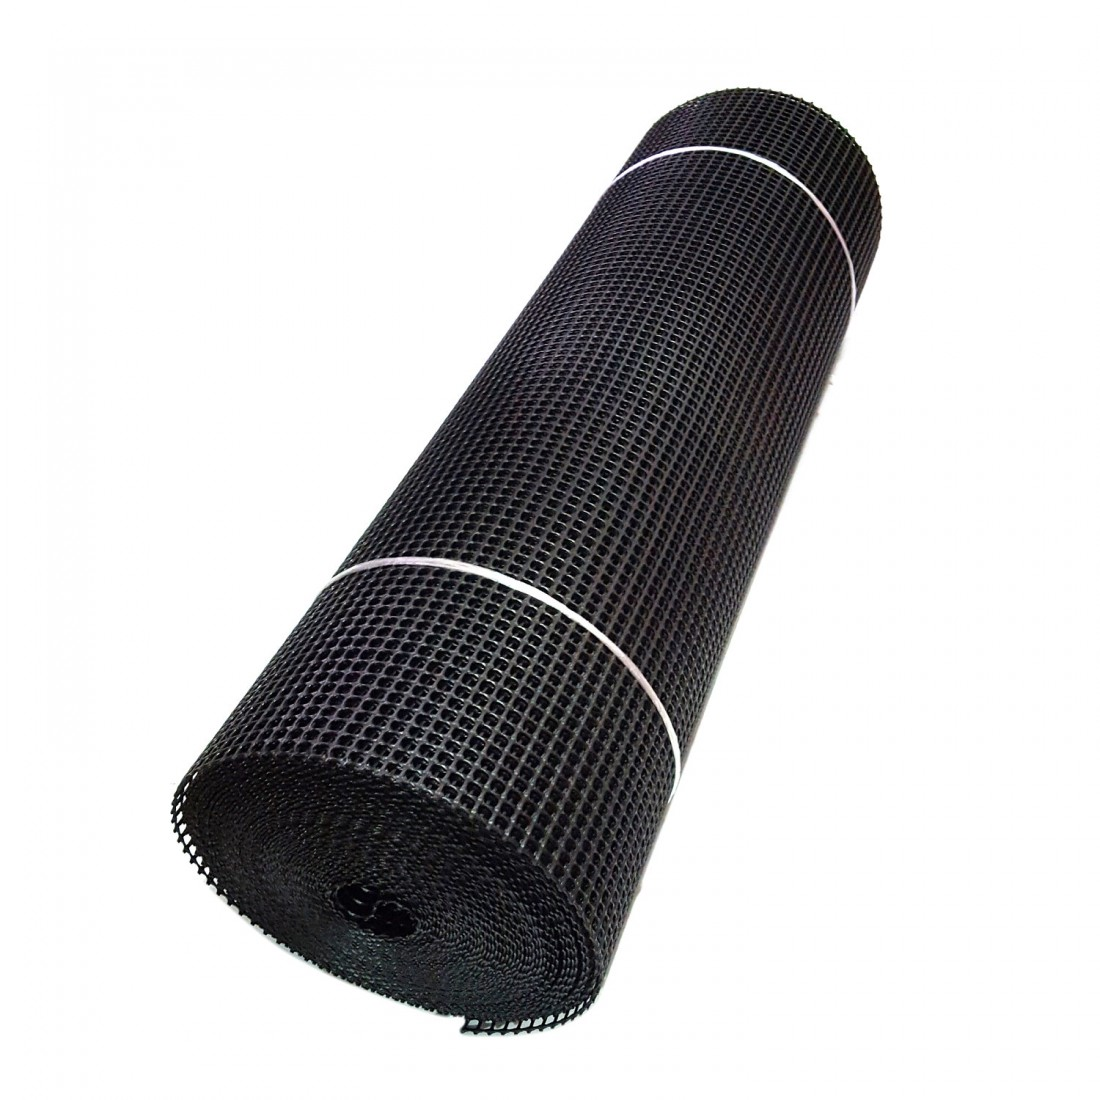 Heavy Duty Windbreak Fence Extruded Square Mesh Black